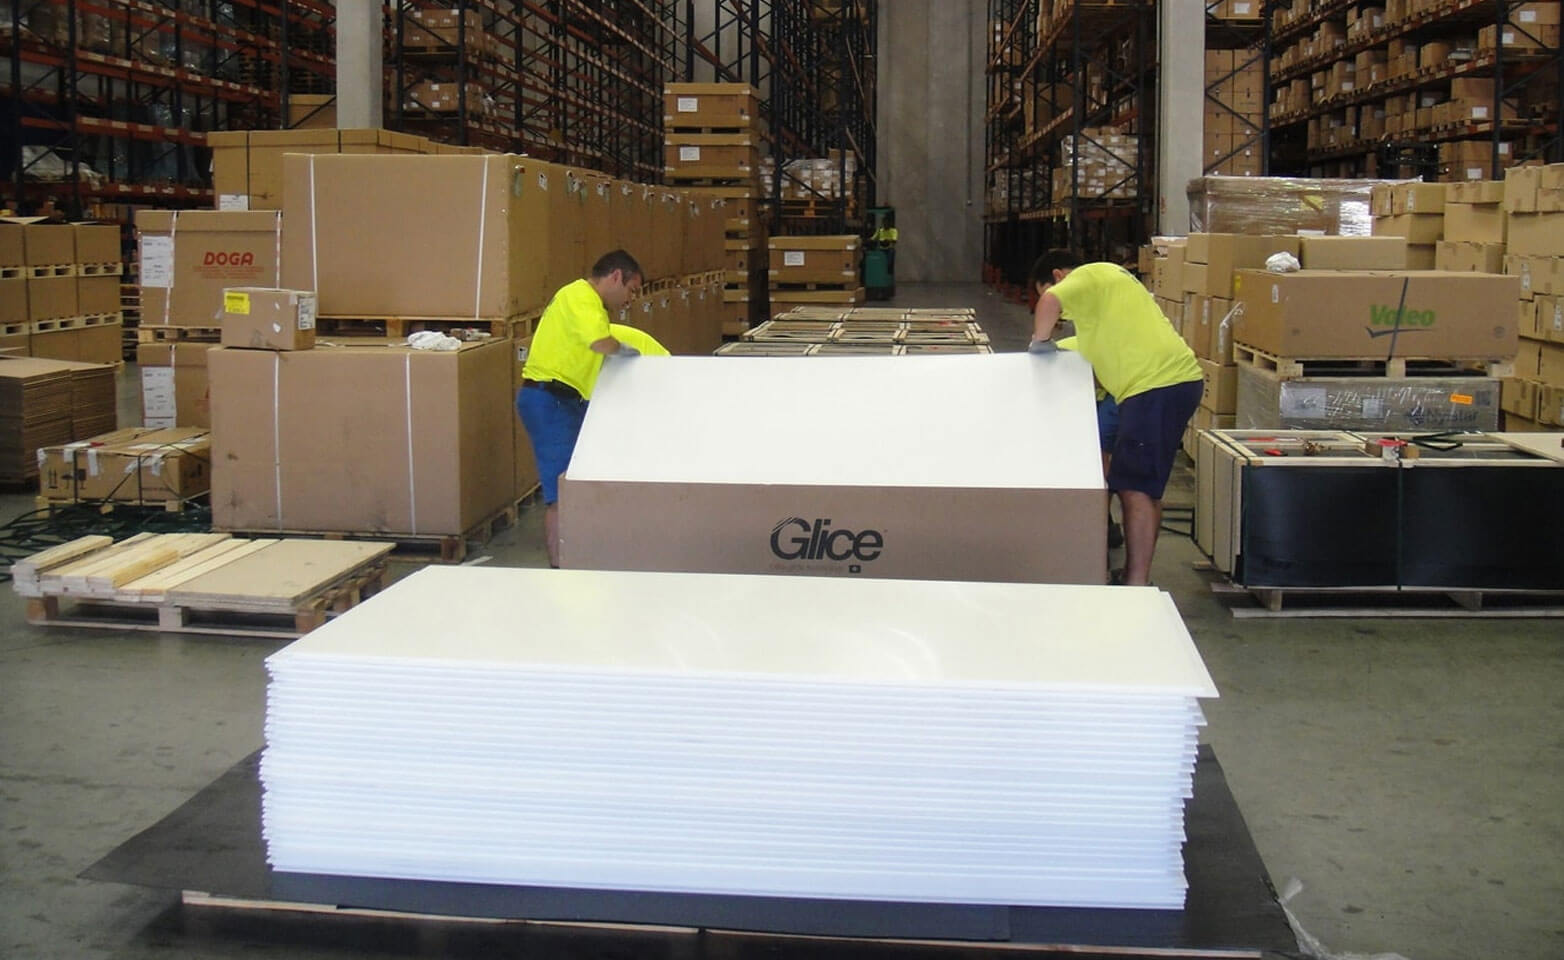 Synthetic ice warehouse and packaging